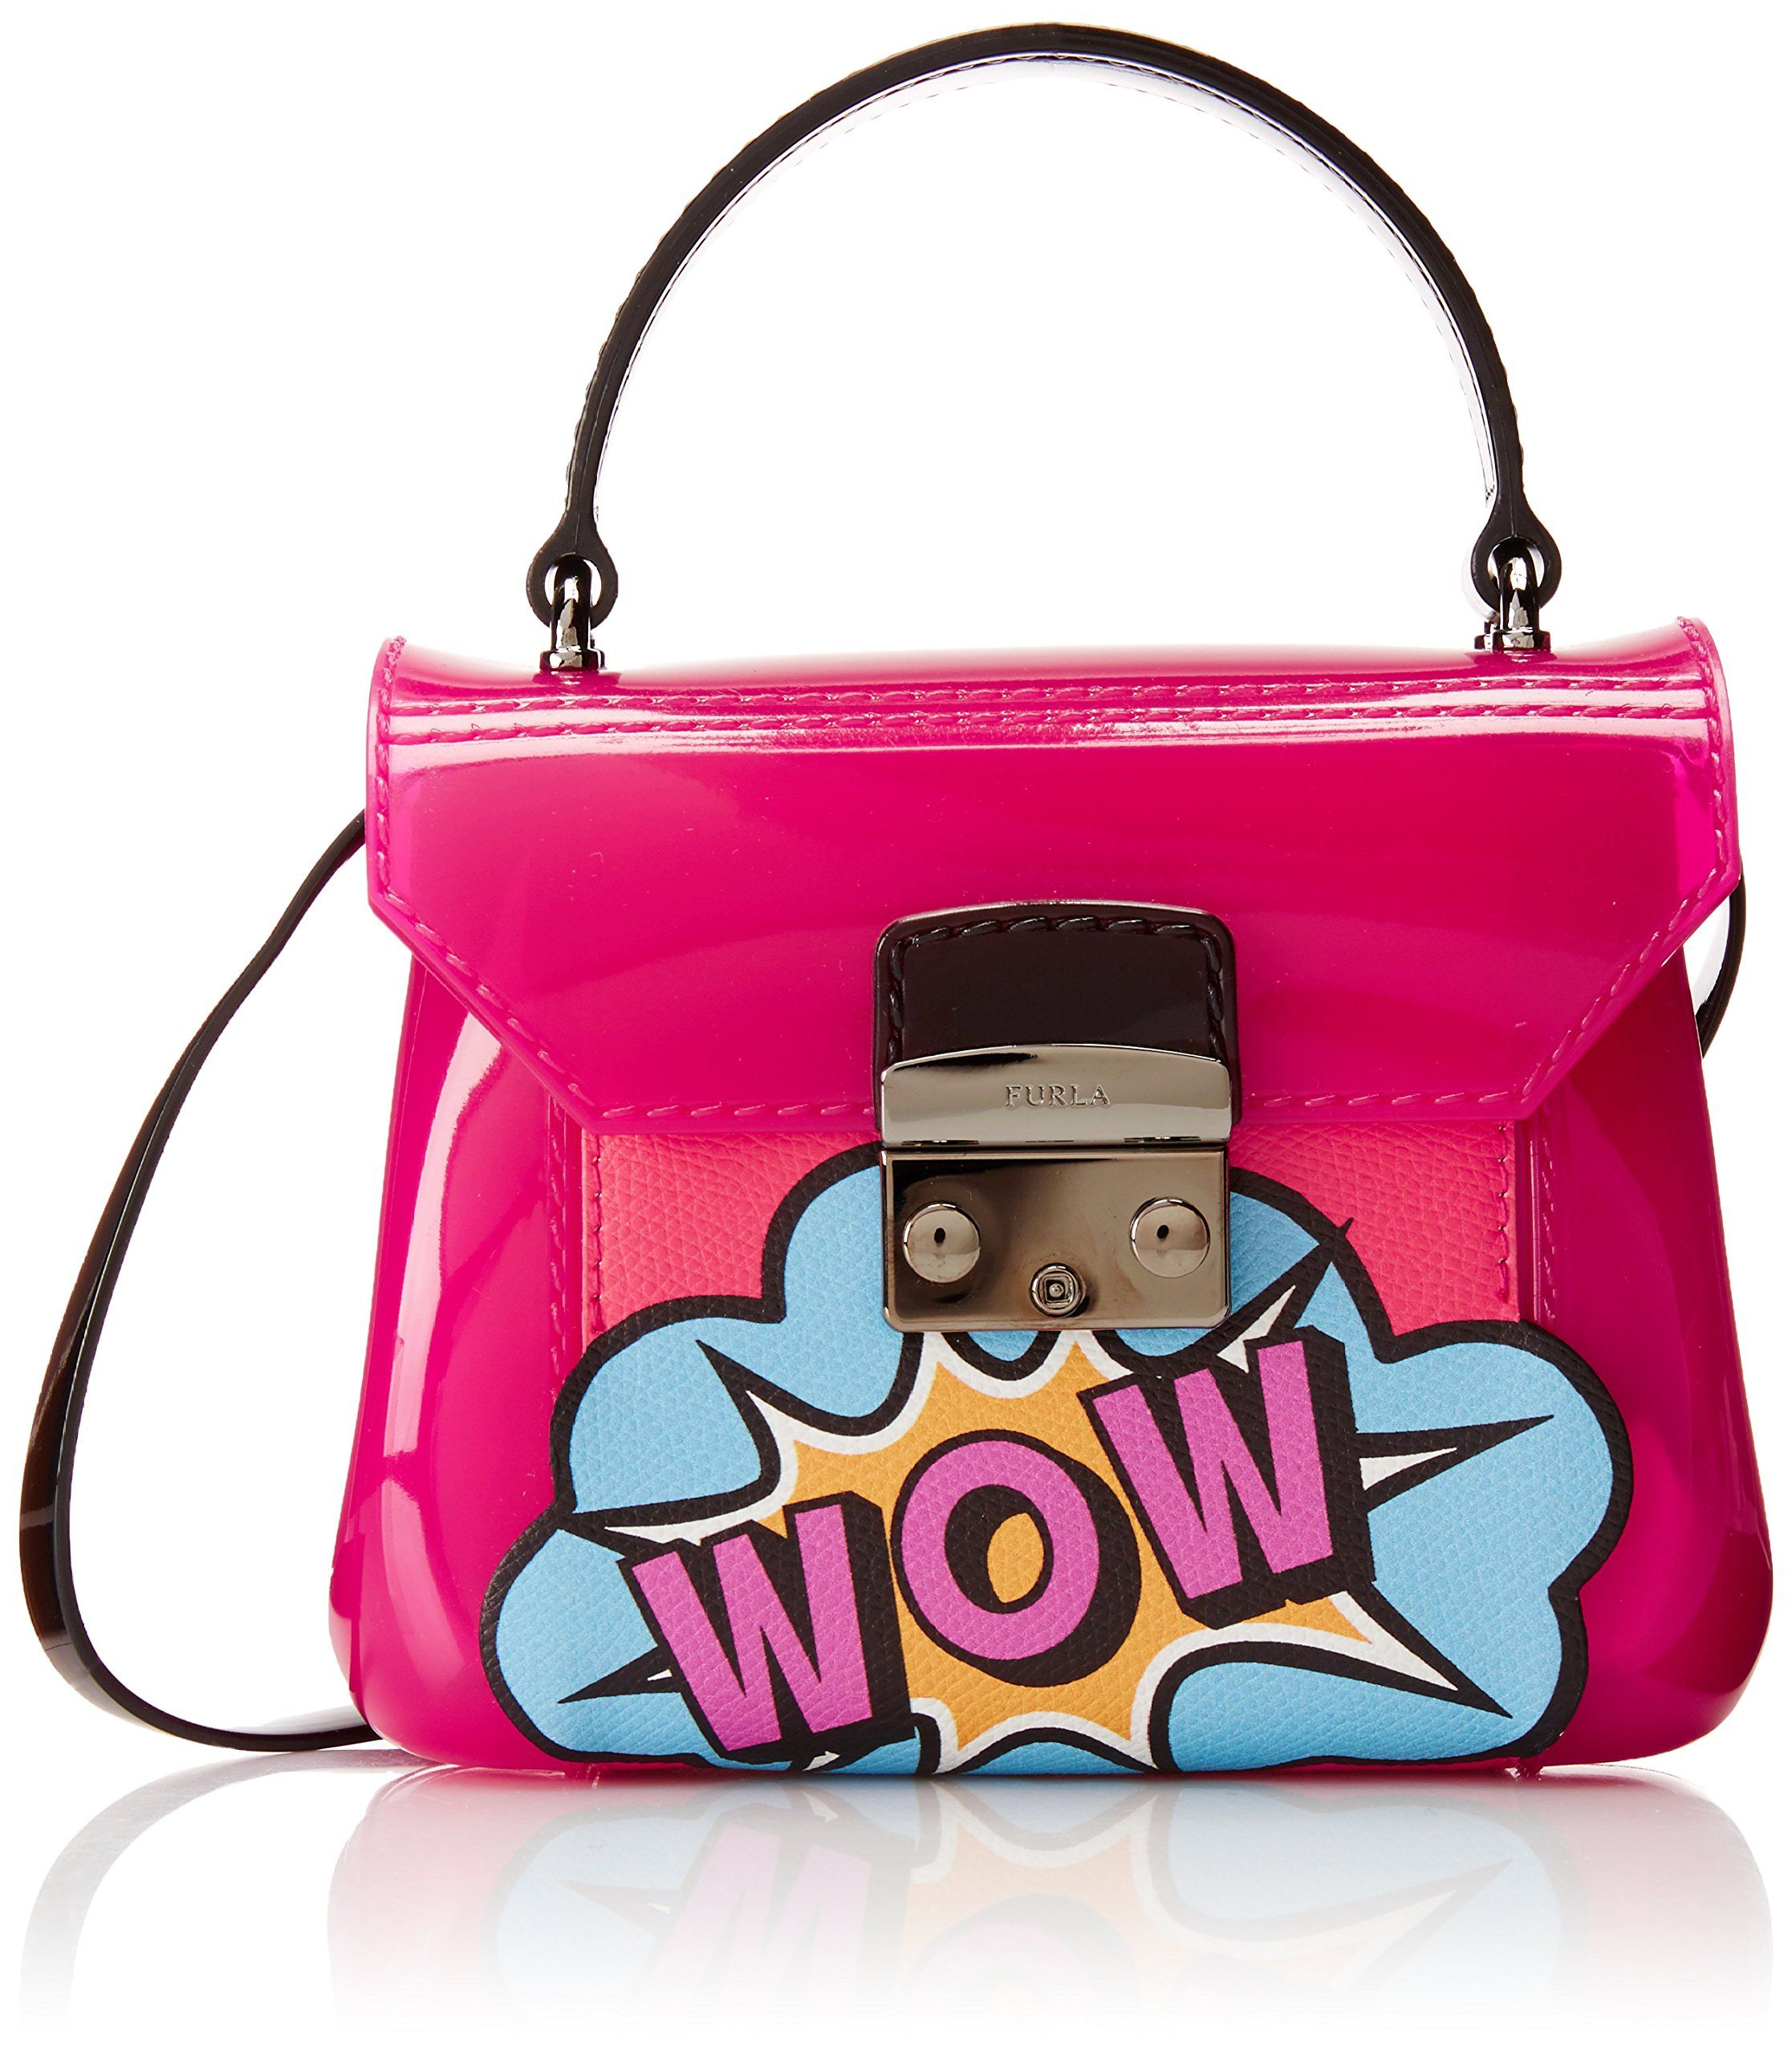 Furla Candy Bon Bon Mini Grafitti Cross Body Bag, Gloss/Hot Pink/Multicolor, One Size. Rubber. Height 5in / 13cm. Width 6.75in / 17cm. Depth 2.75in / 7cm.